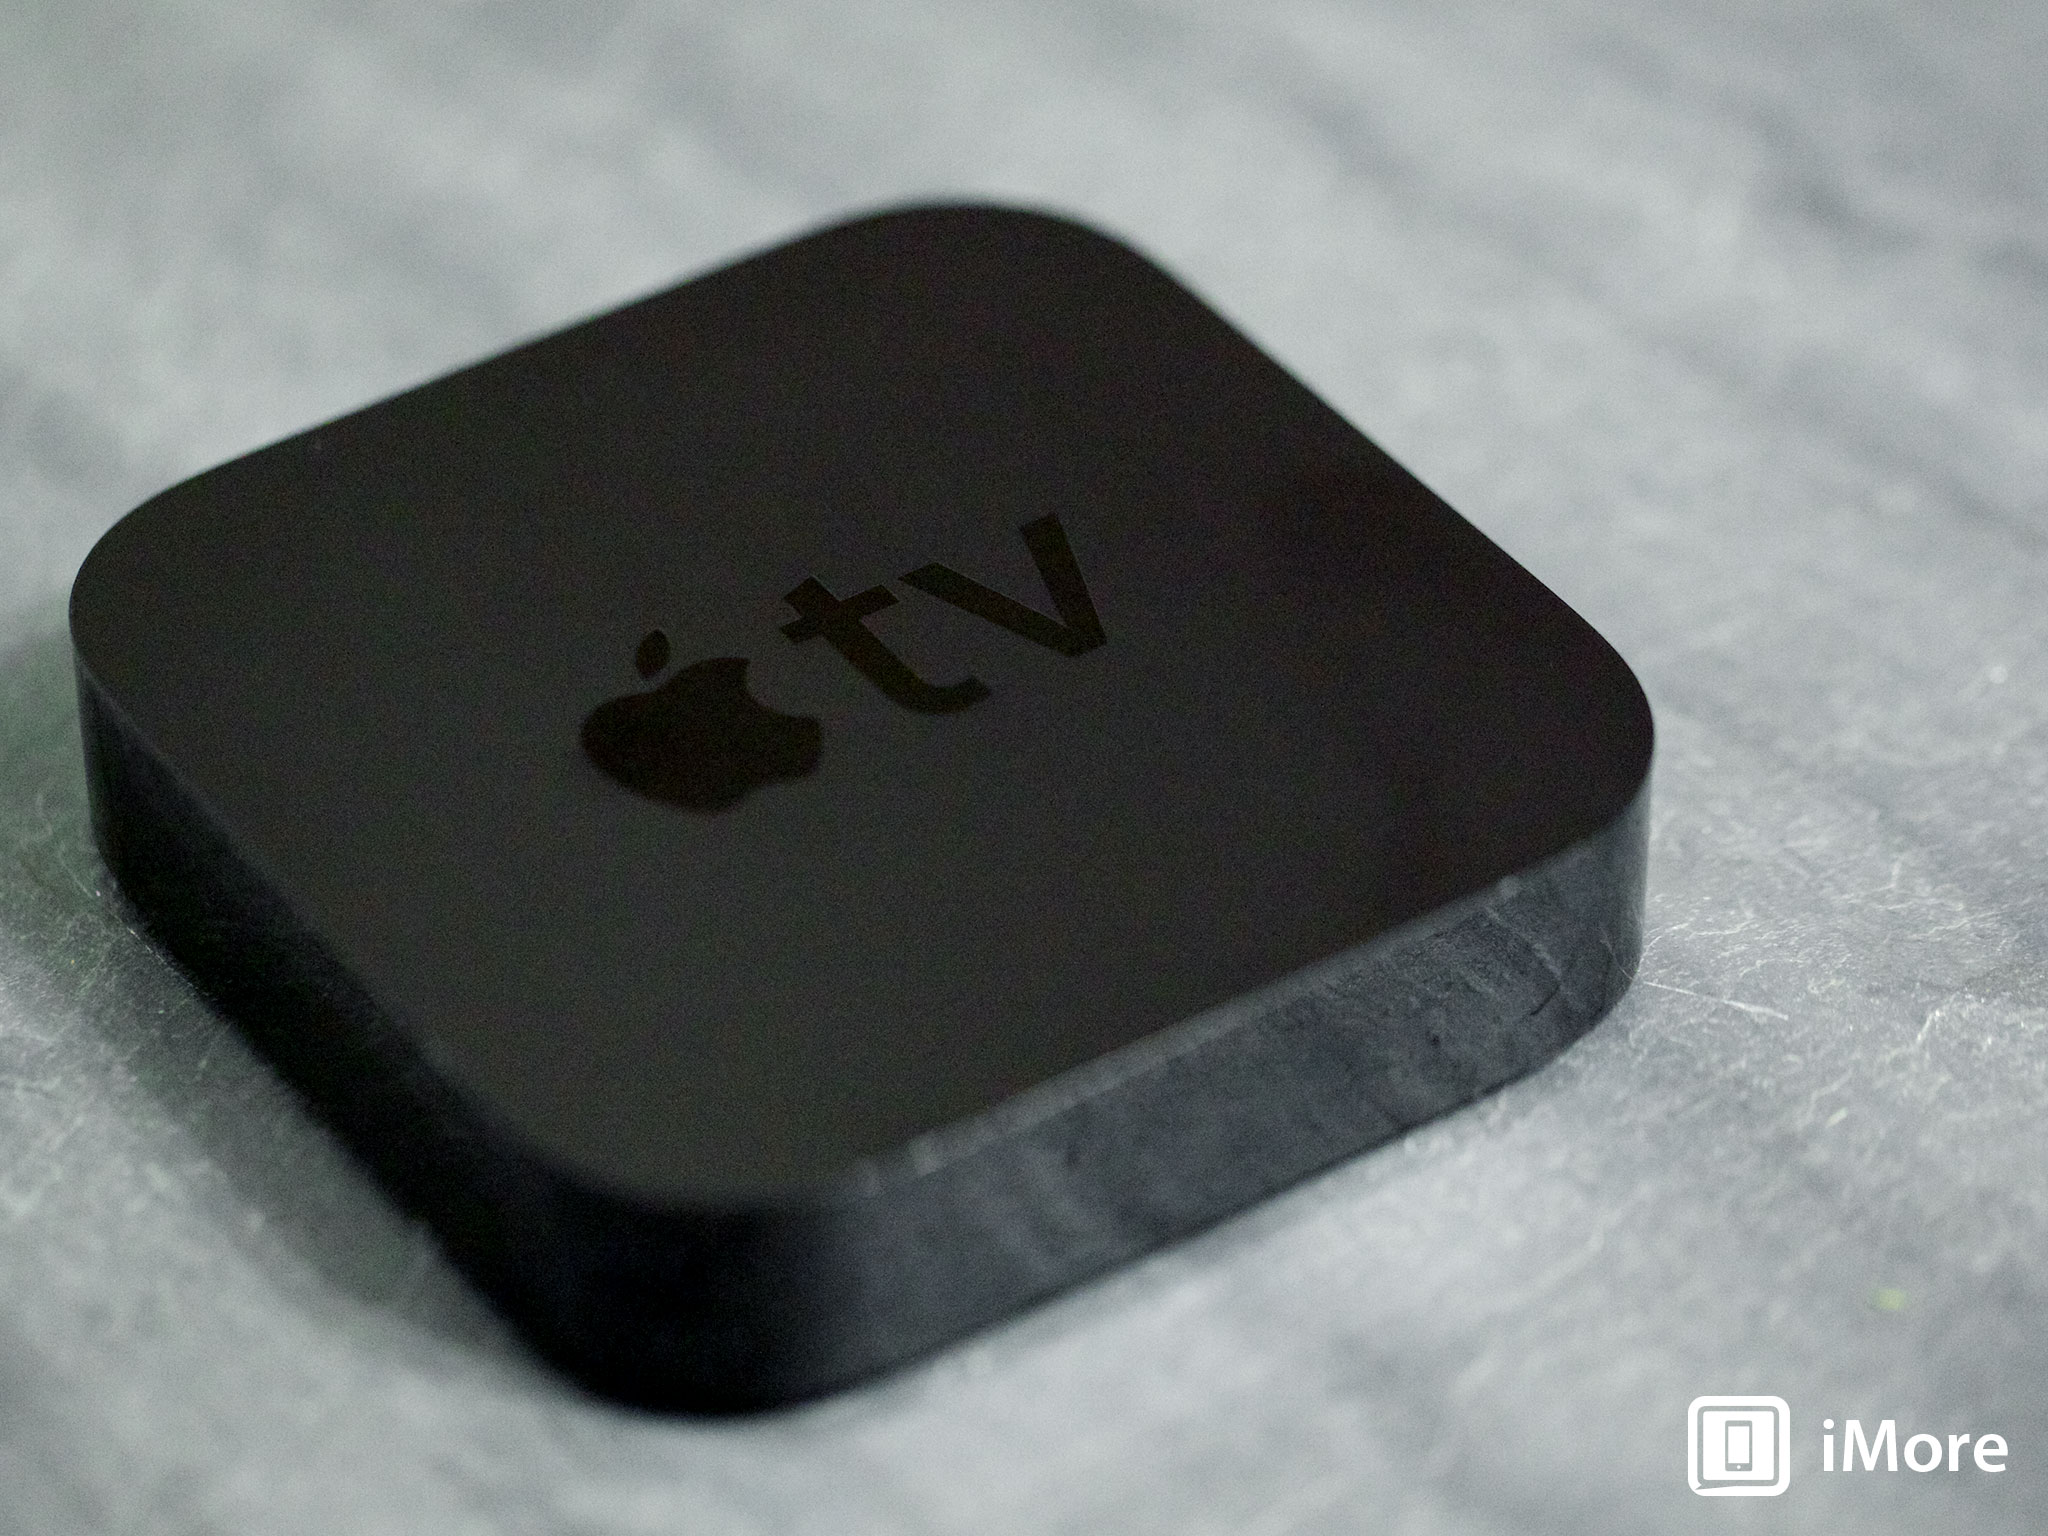 Apple TV gets a place of its own in Apple's online store; are big changes in store?